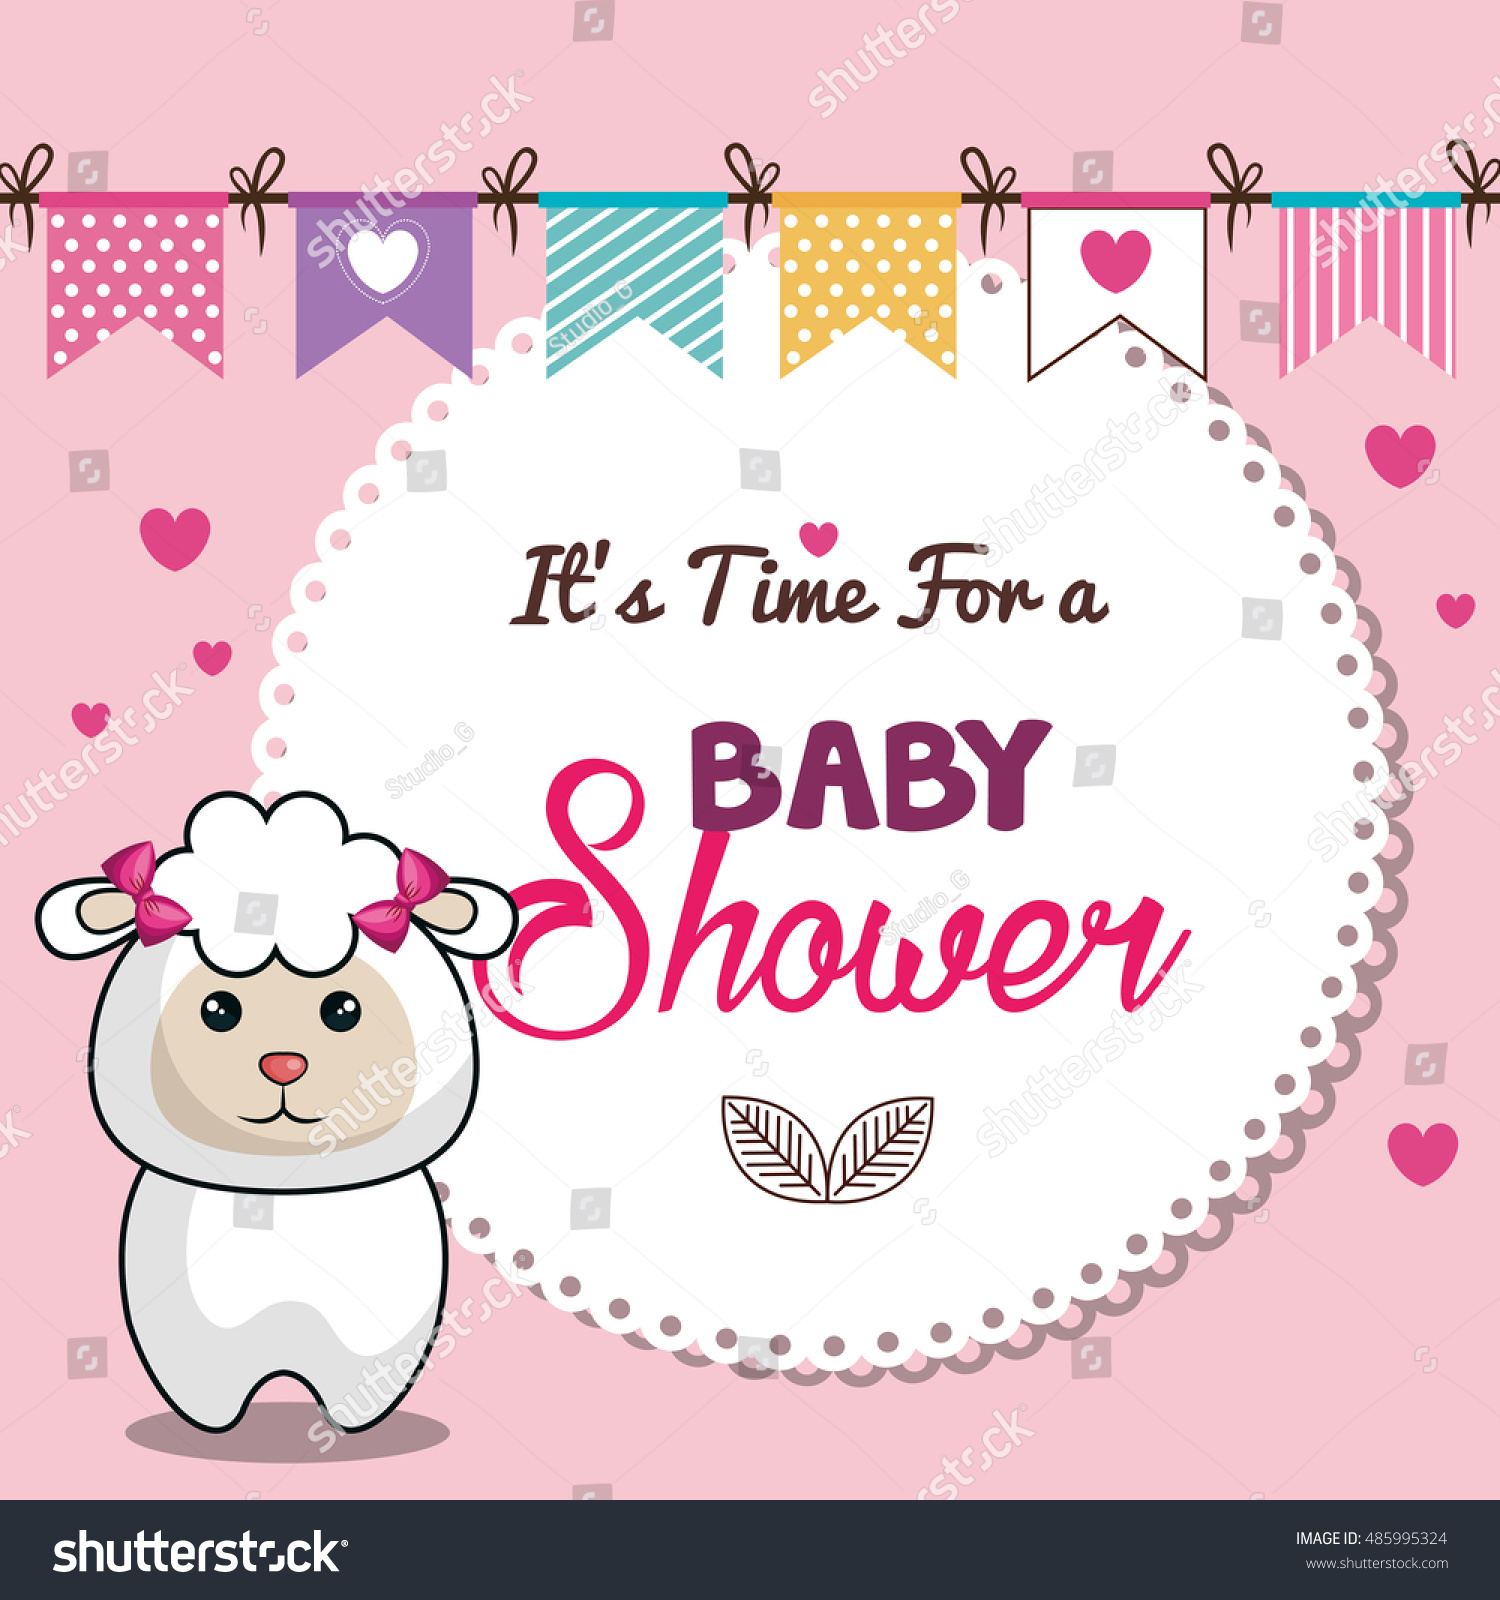 Invitation Baby Shower Card Pink Sheep Stock Vector